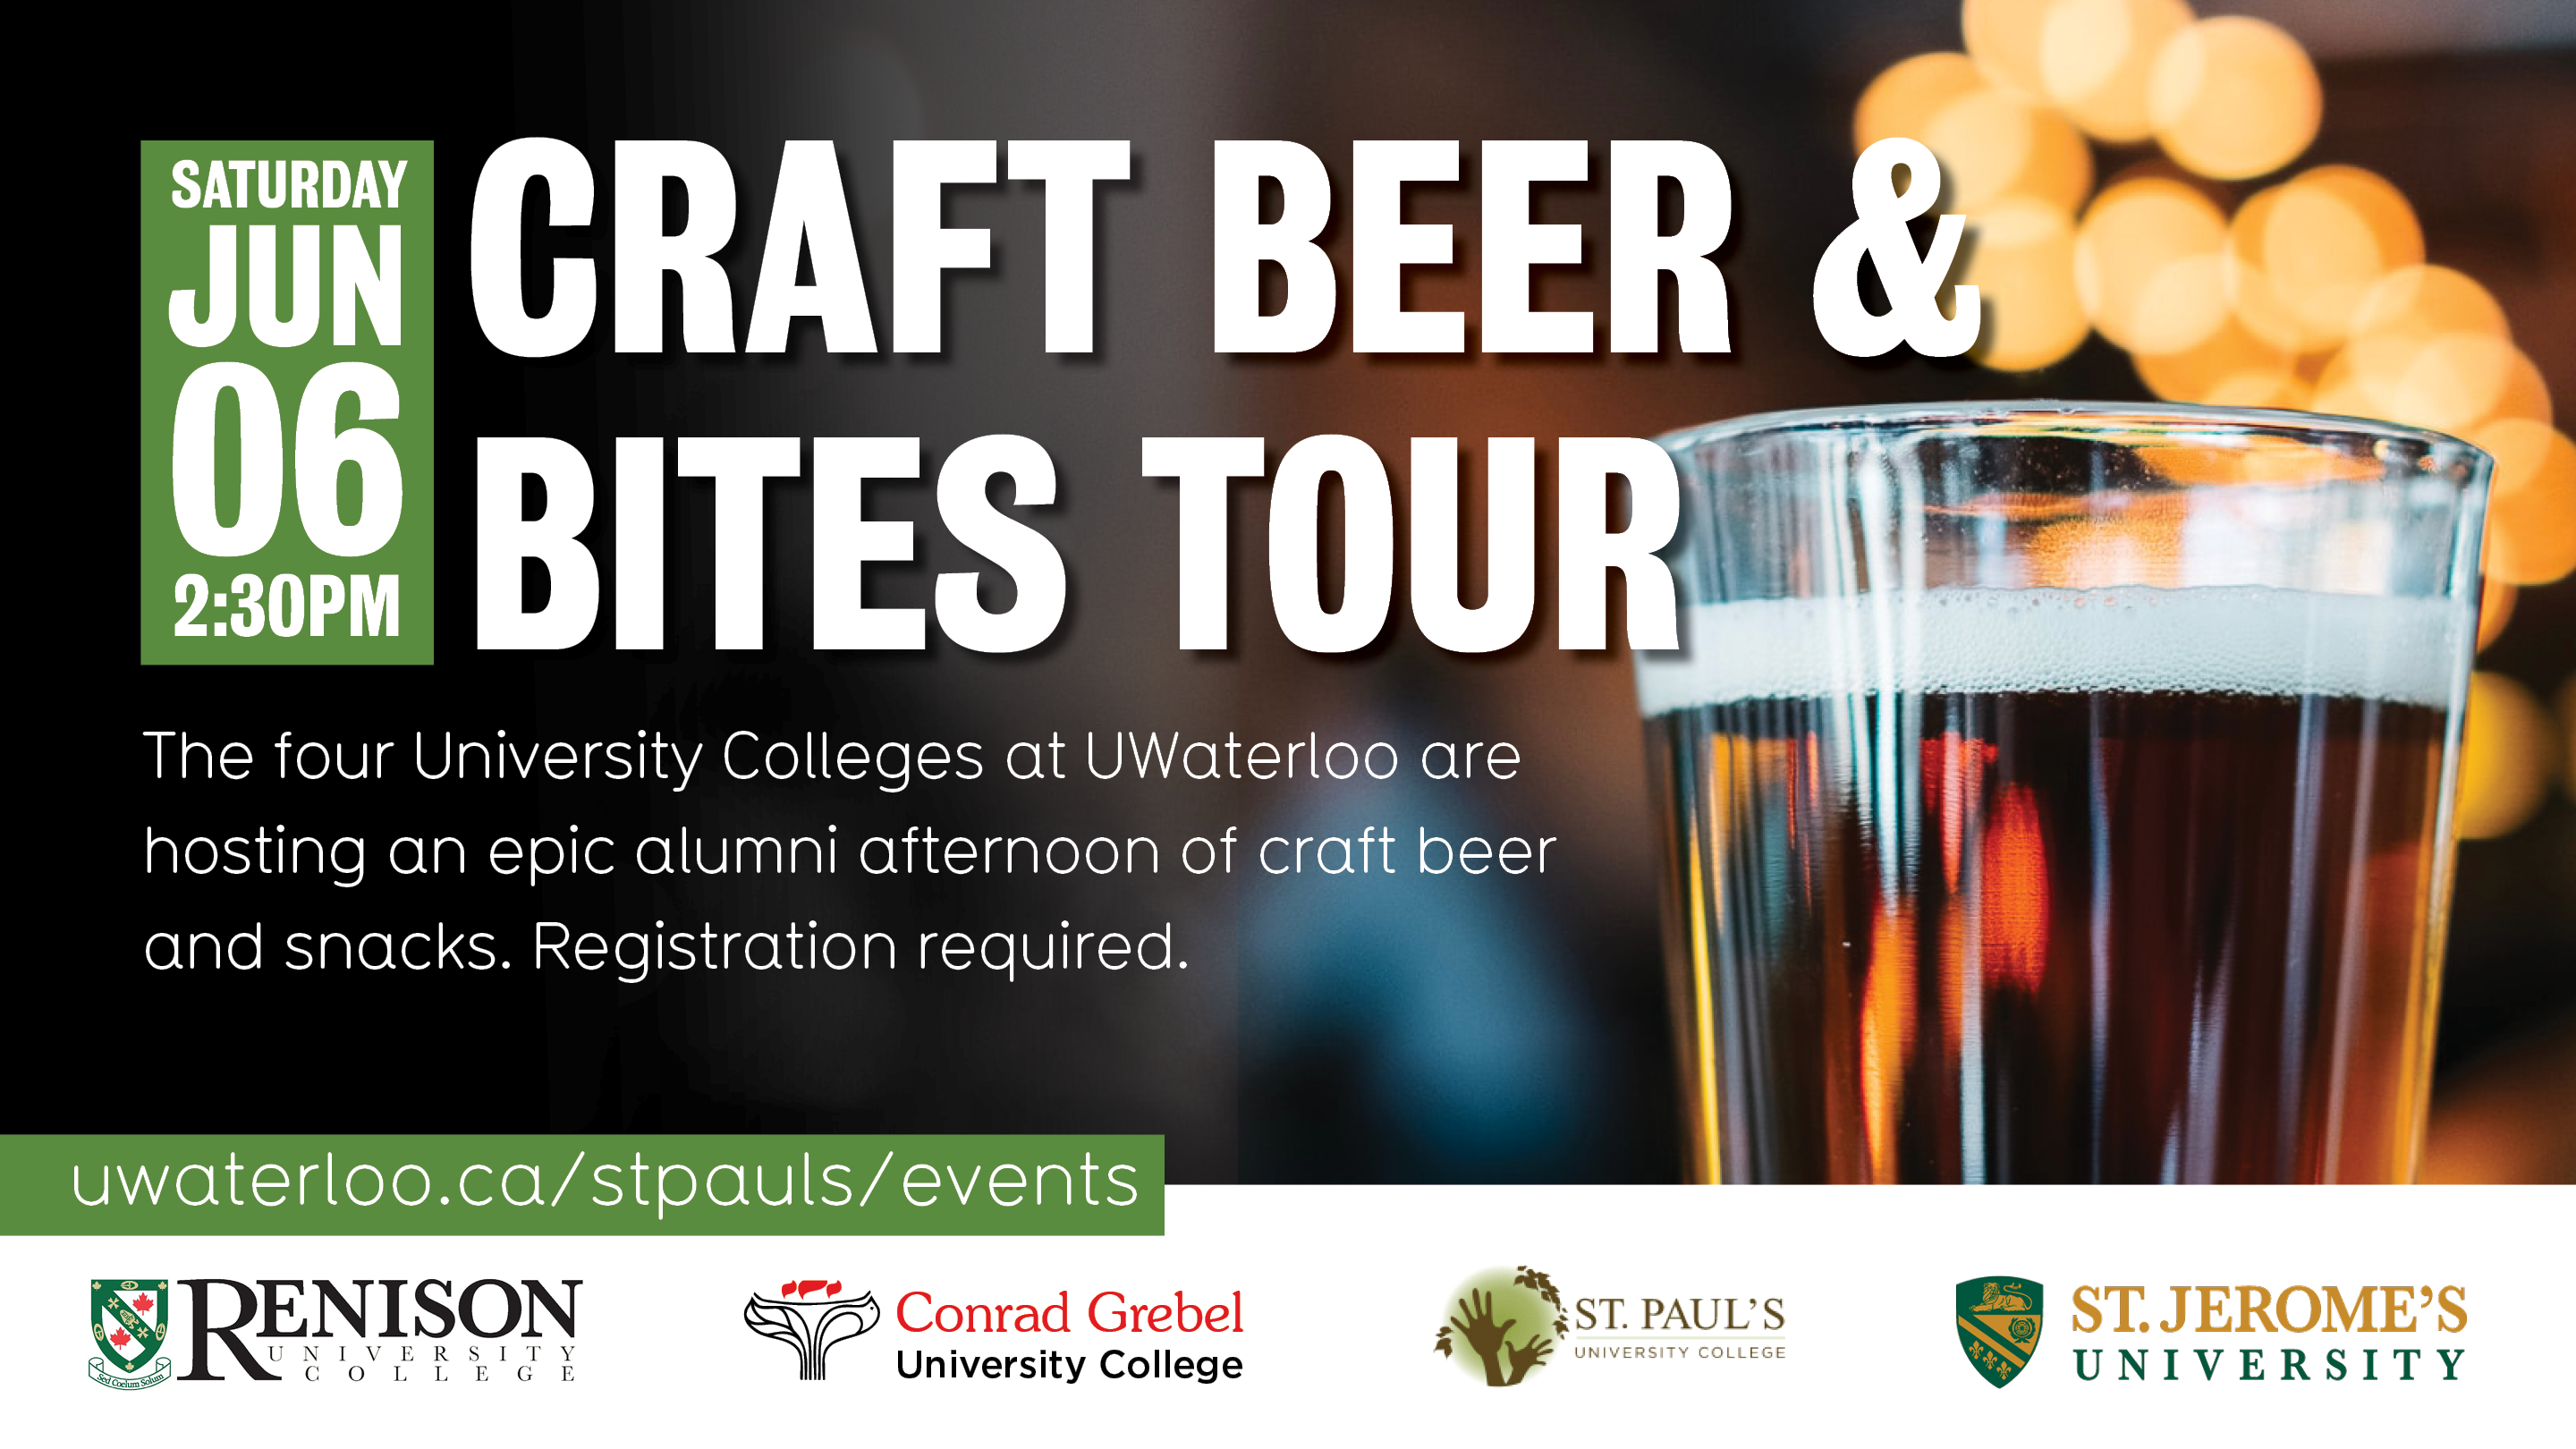 Advertisement for 2020 alumni weekend Across the Creek: Craft Beer & Bites tour